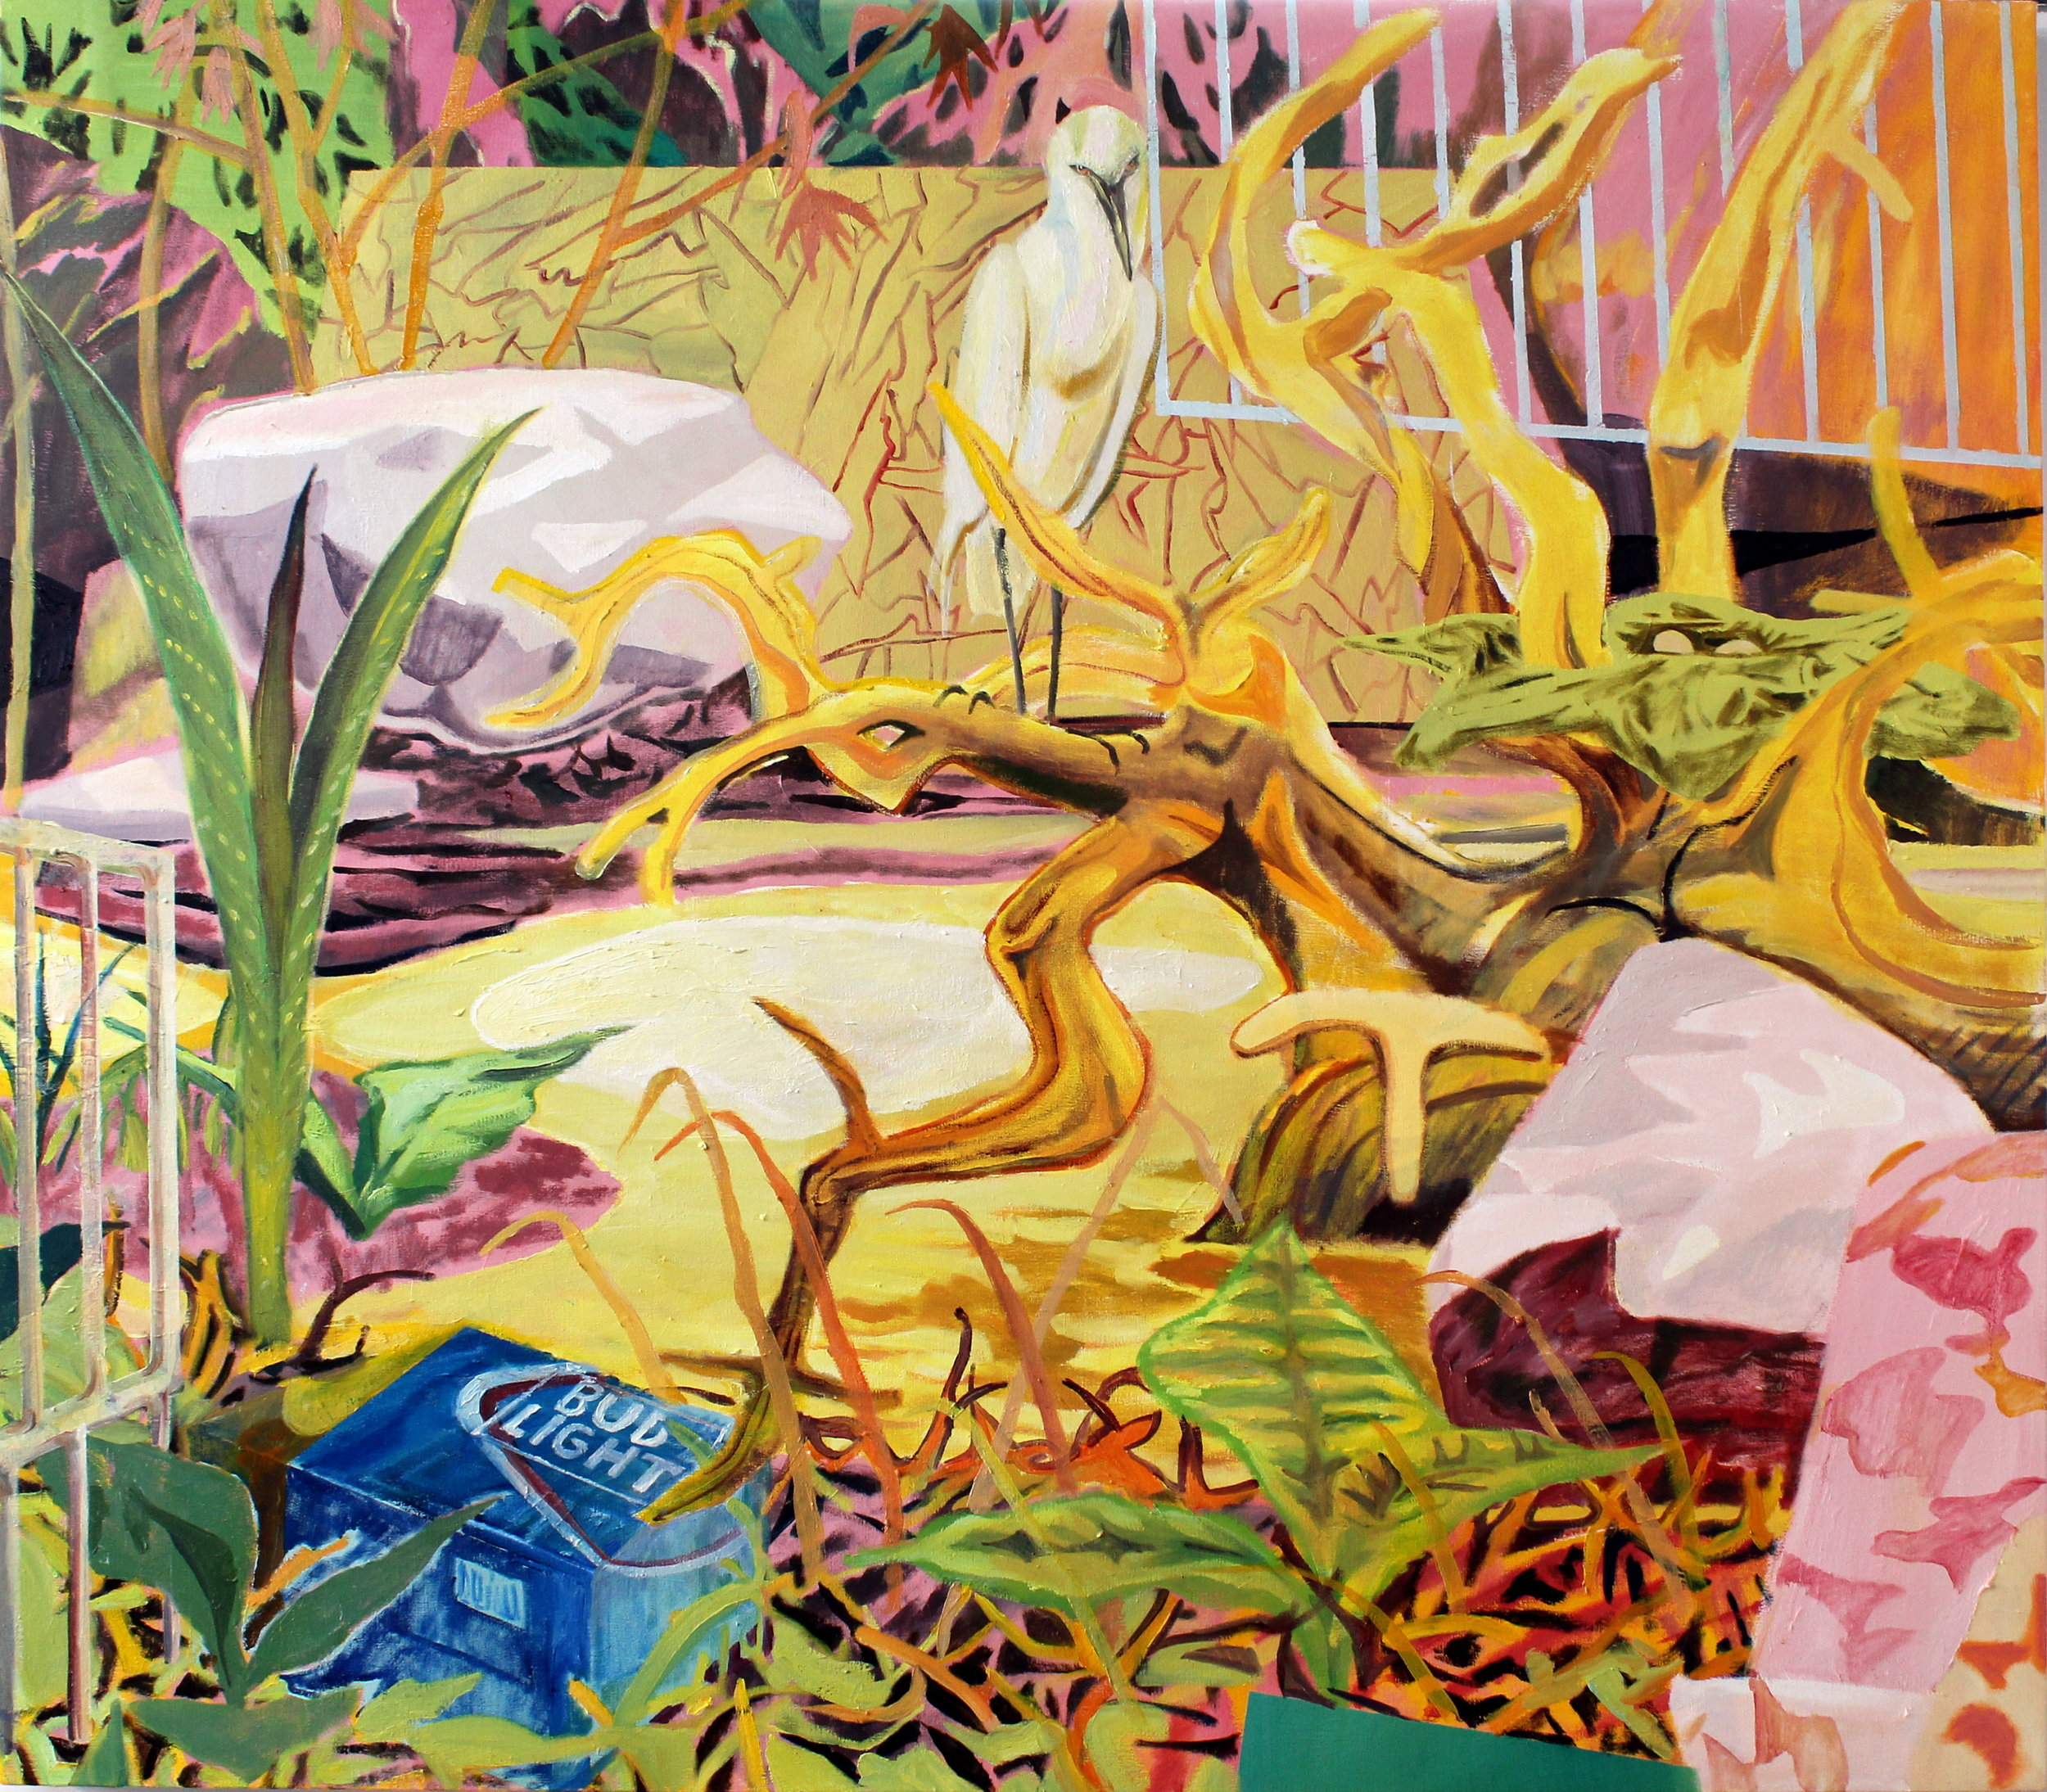 """Rookery, 2019, oil on canvas, 55x63"""" (140x160cm)"""